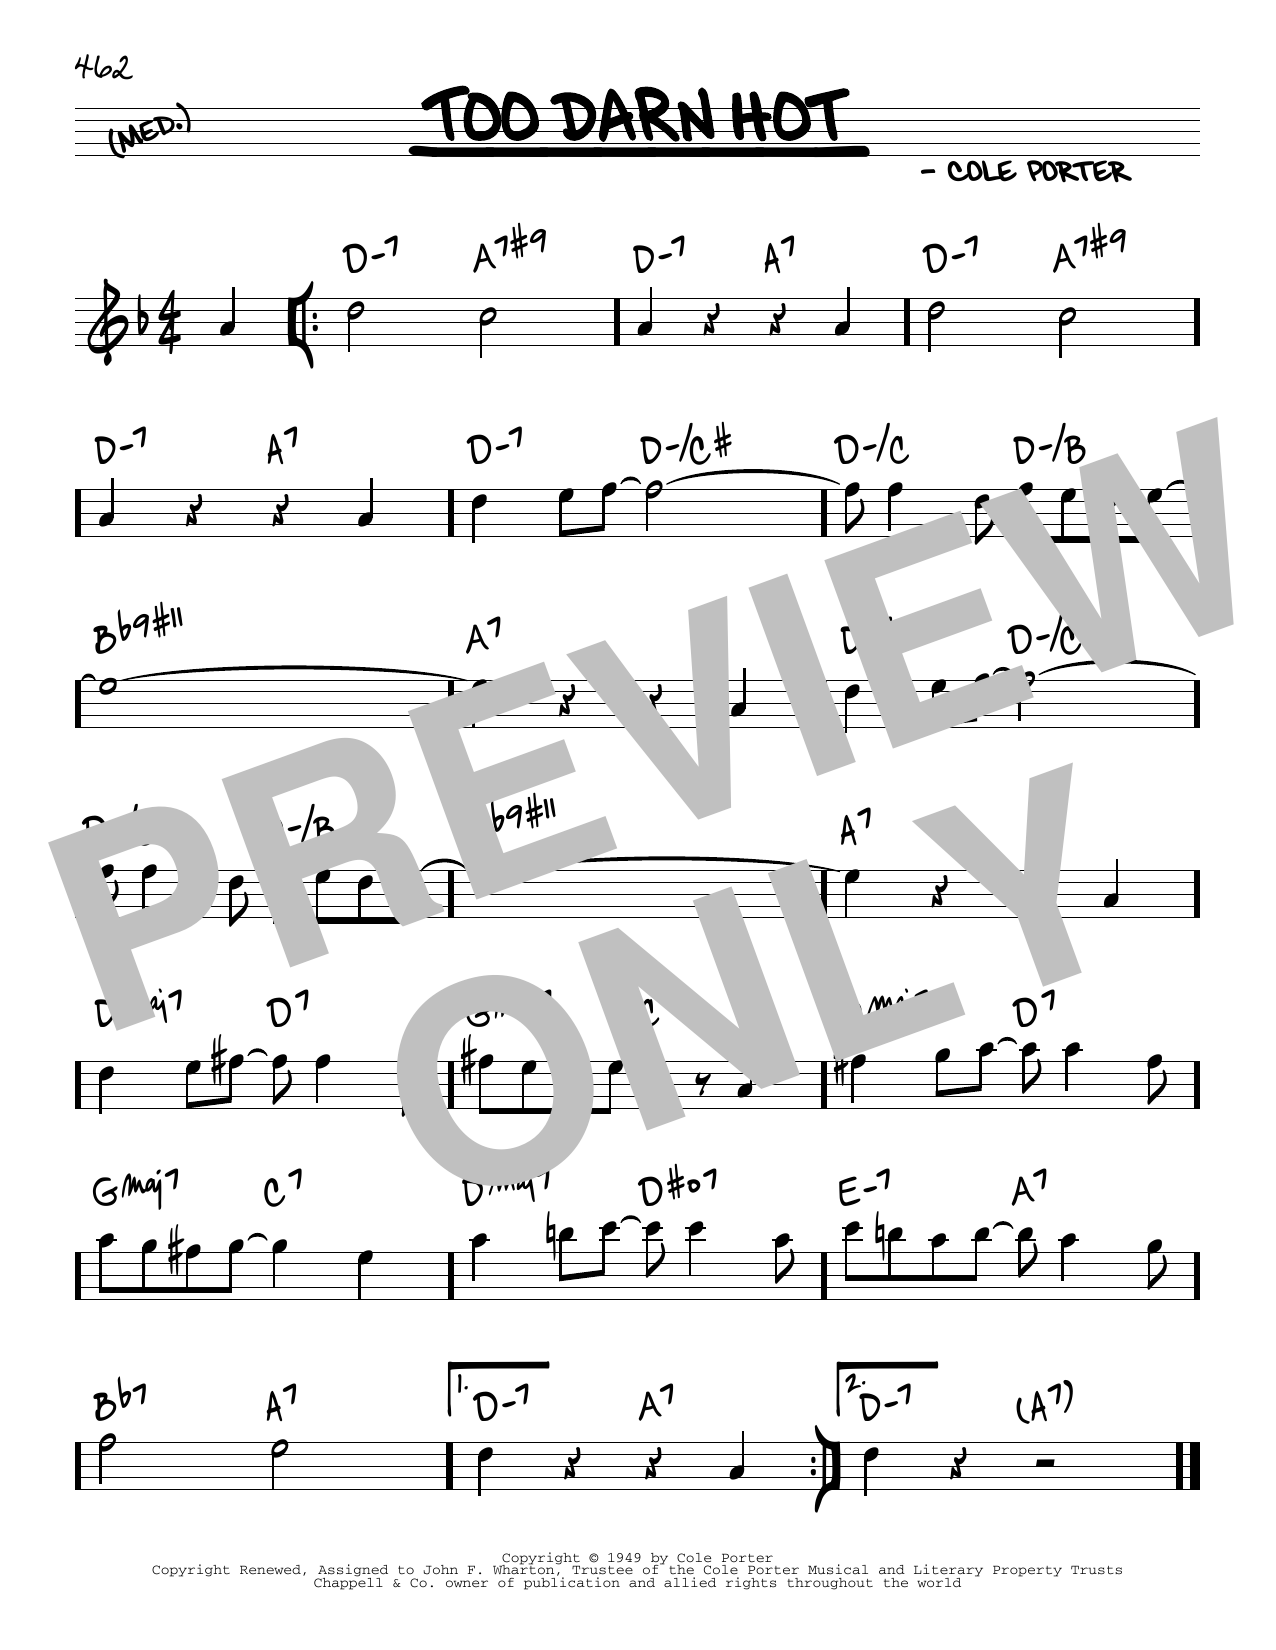 Cole Porter Too Darn Hot sheet music notes and chords. Download Printable PDF.